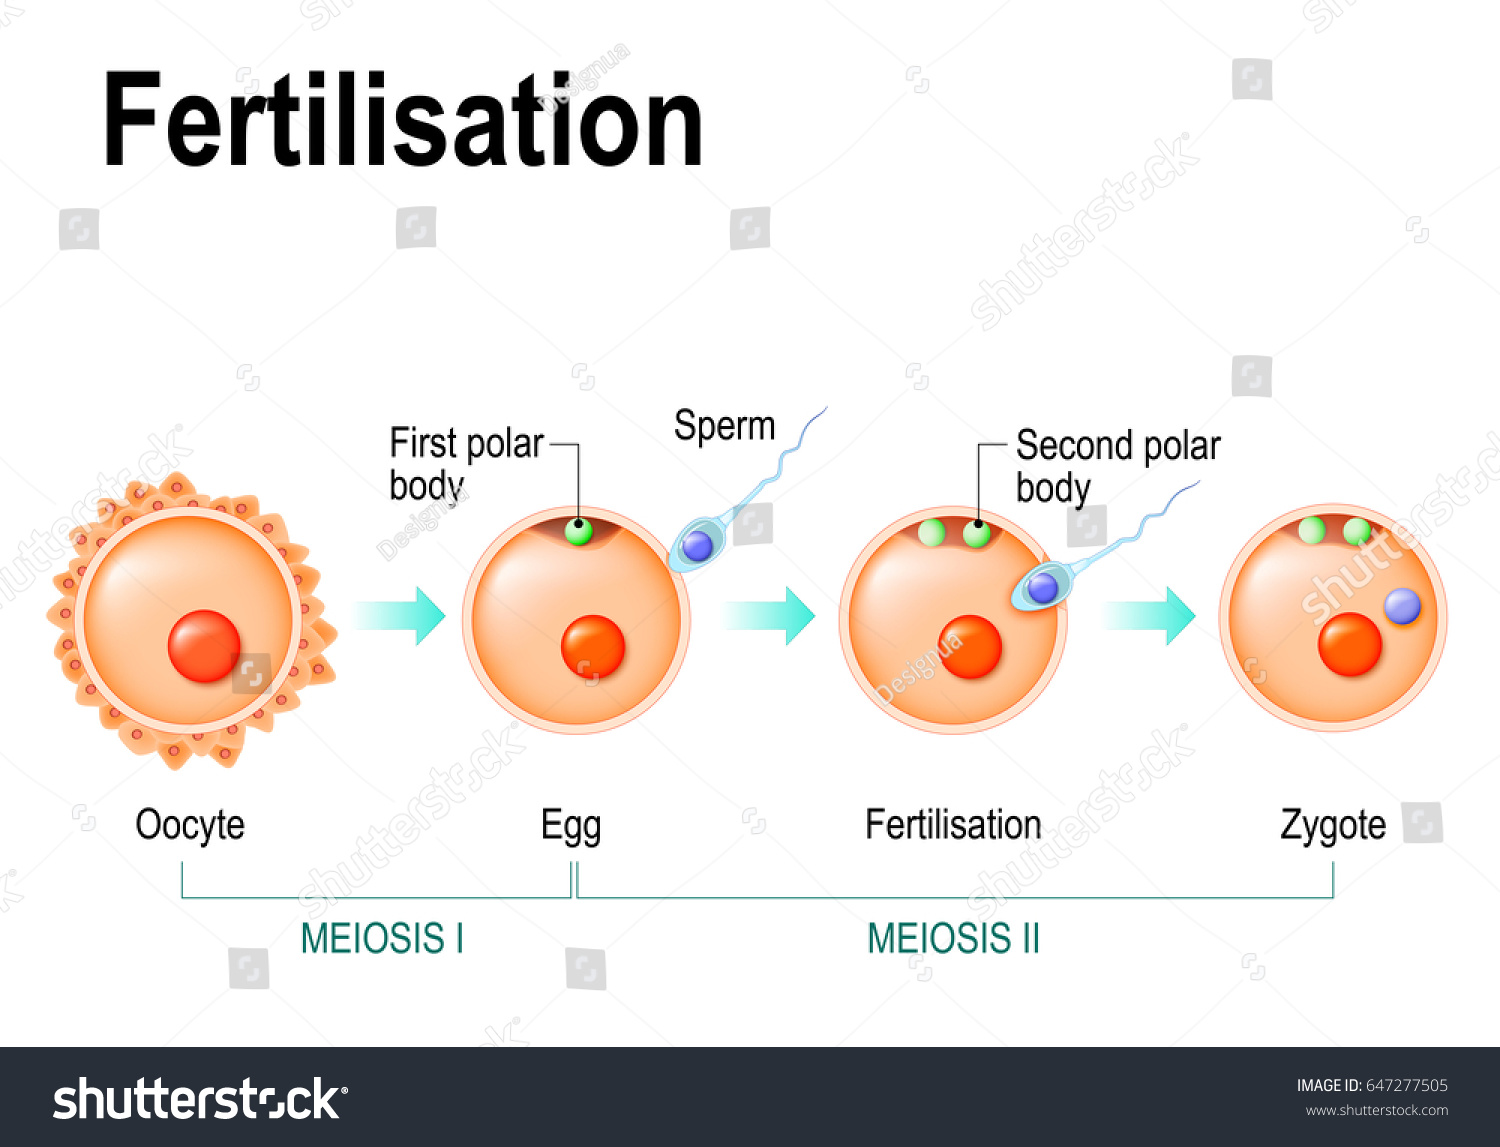 hight resolution of meiosis and fertilization the different stages of meiosis in mammalian oocytes